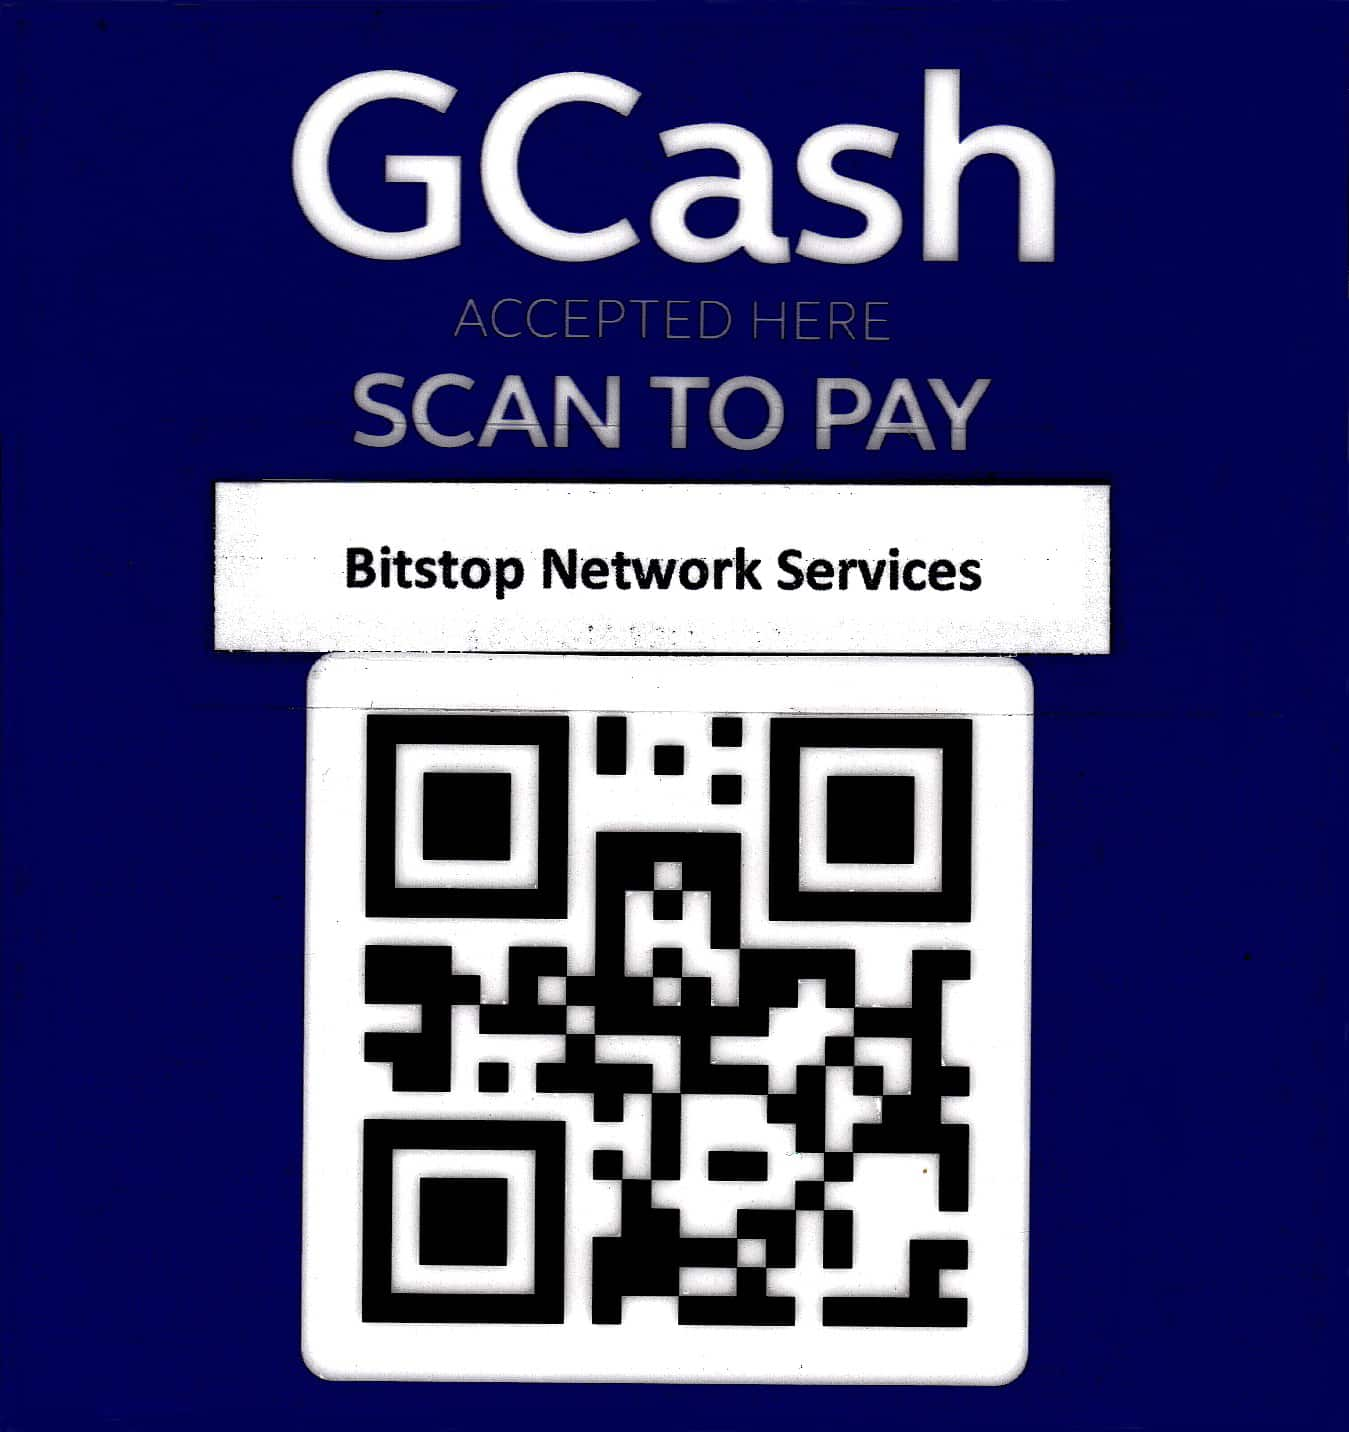 bns-gcash – Bitstop Network Services Data Center